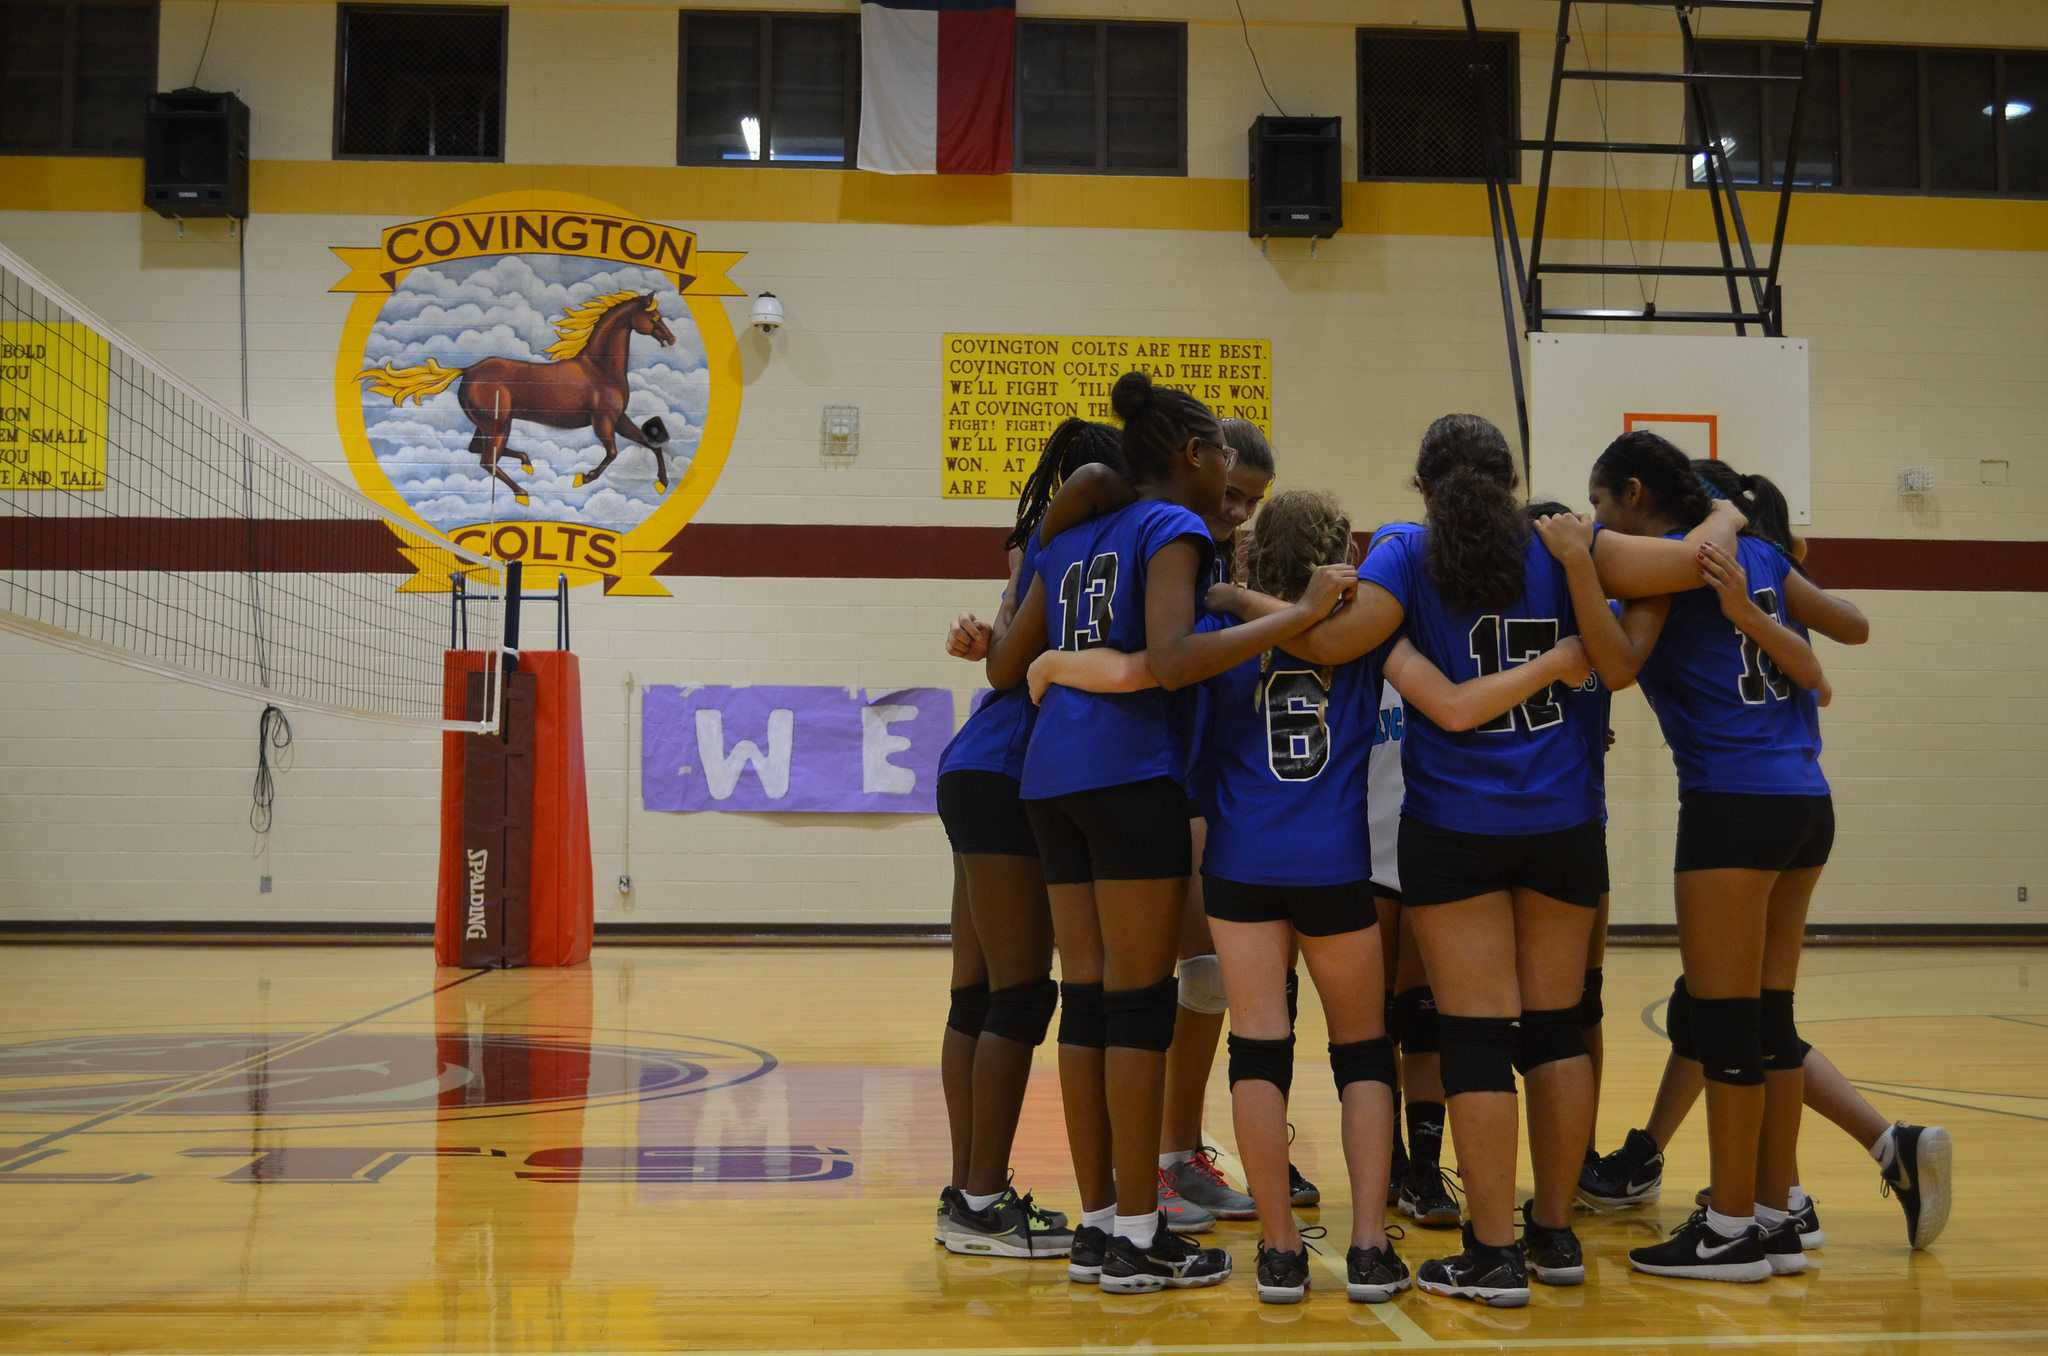 Photo Credit: Sammie Seamon The Ann Richards volleyball team huddles for a group discussion before their game against Covington Middle School.